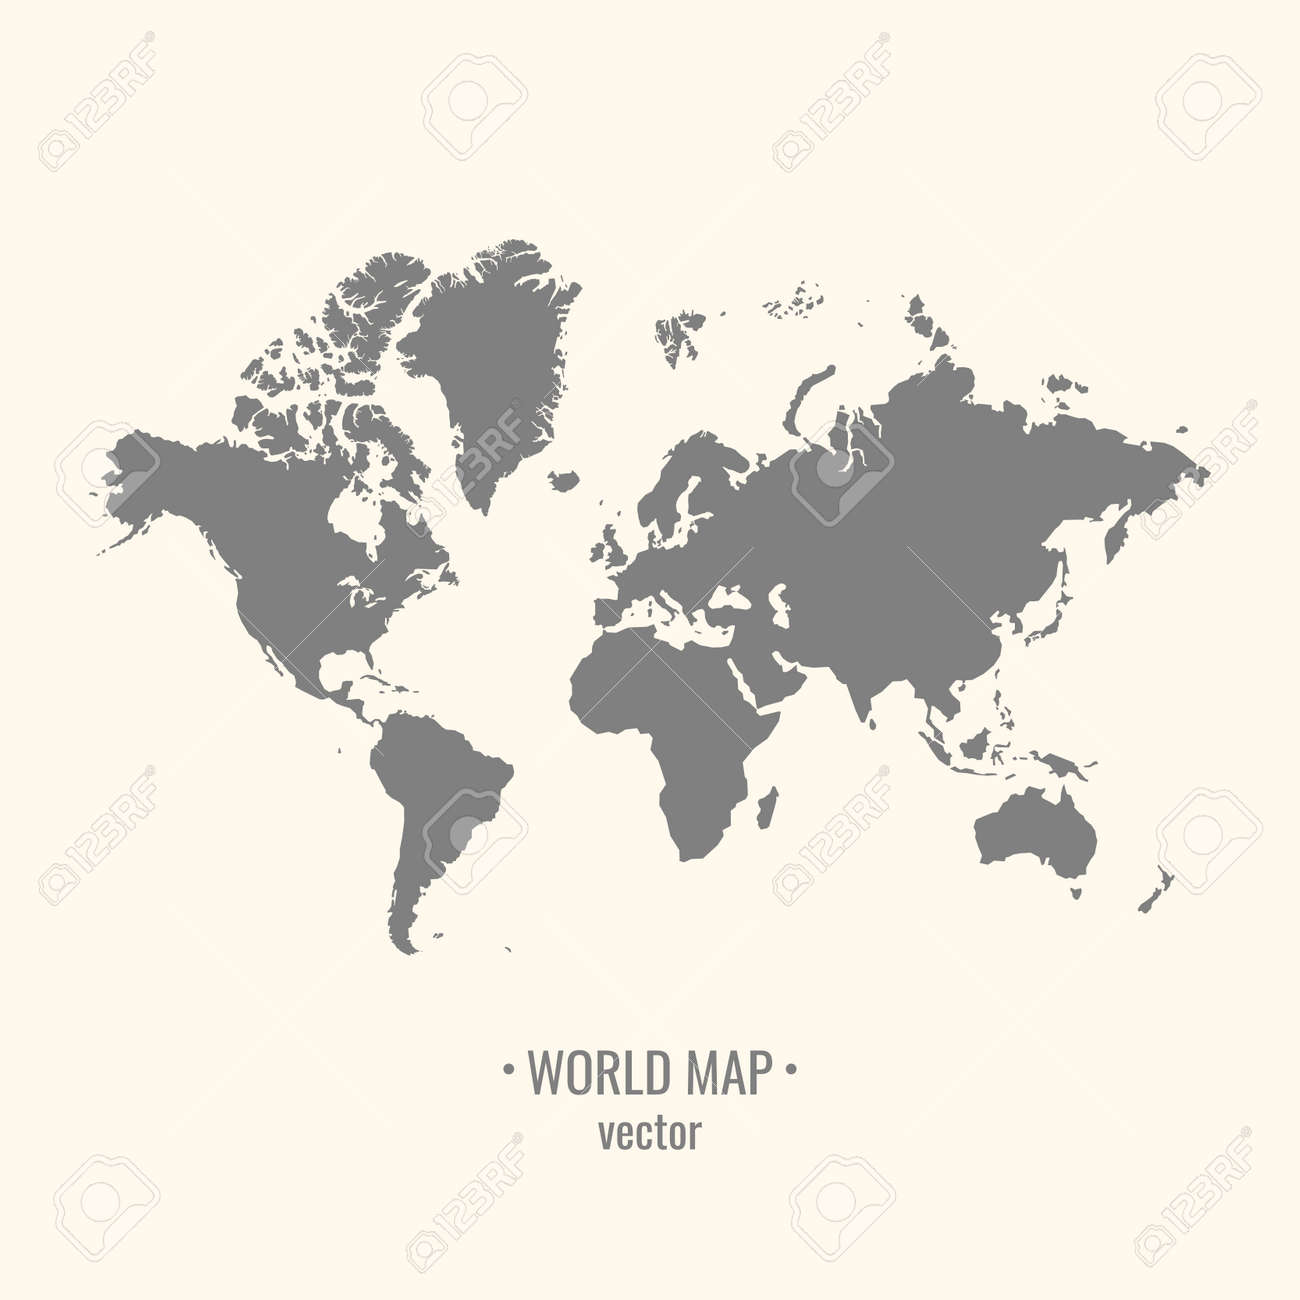 Silhouette world map on a light background the image of the silhouette world map on a light background the image of the continents vector illustration gumiabroncs Images